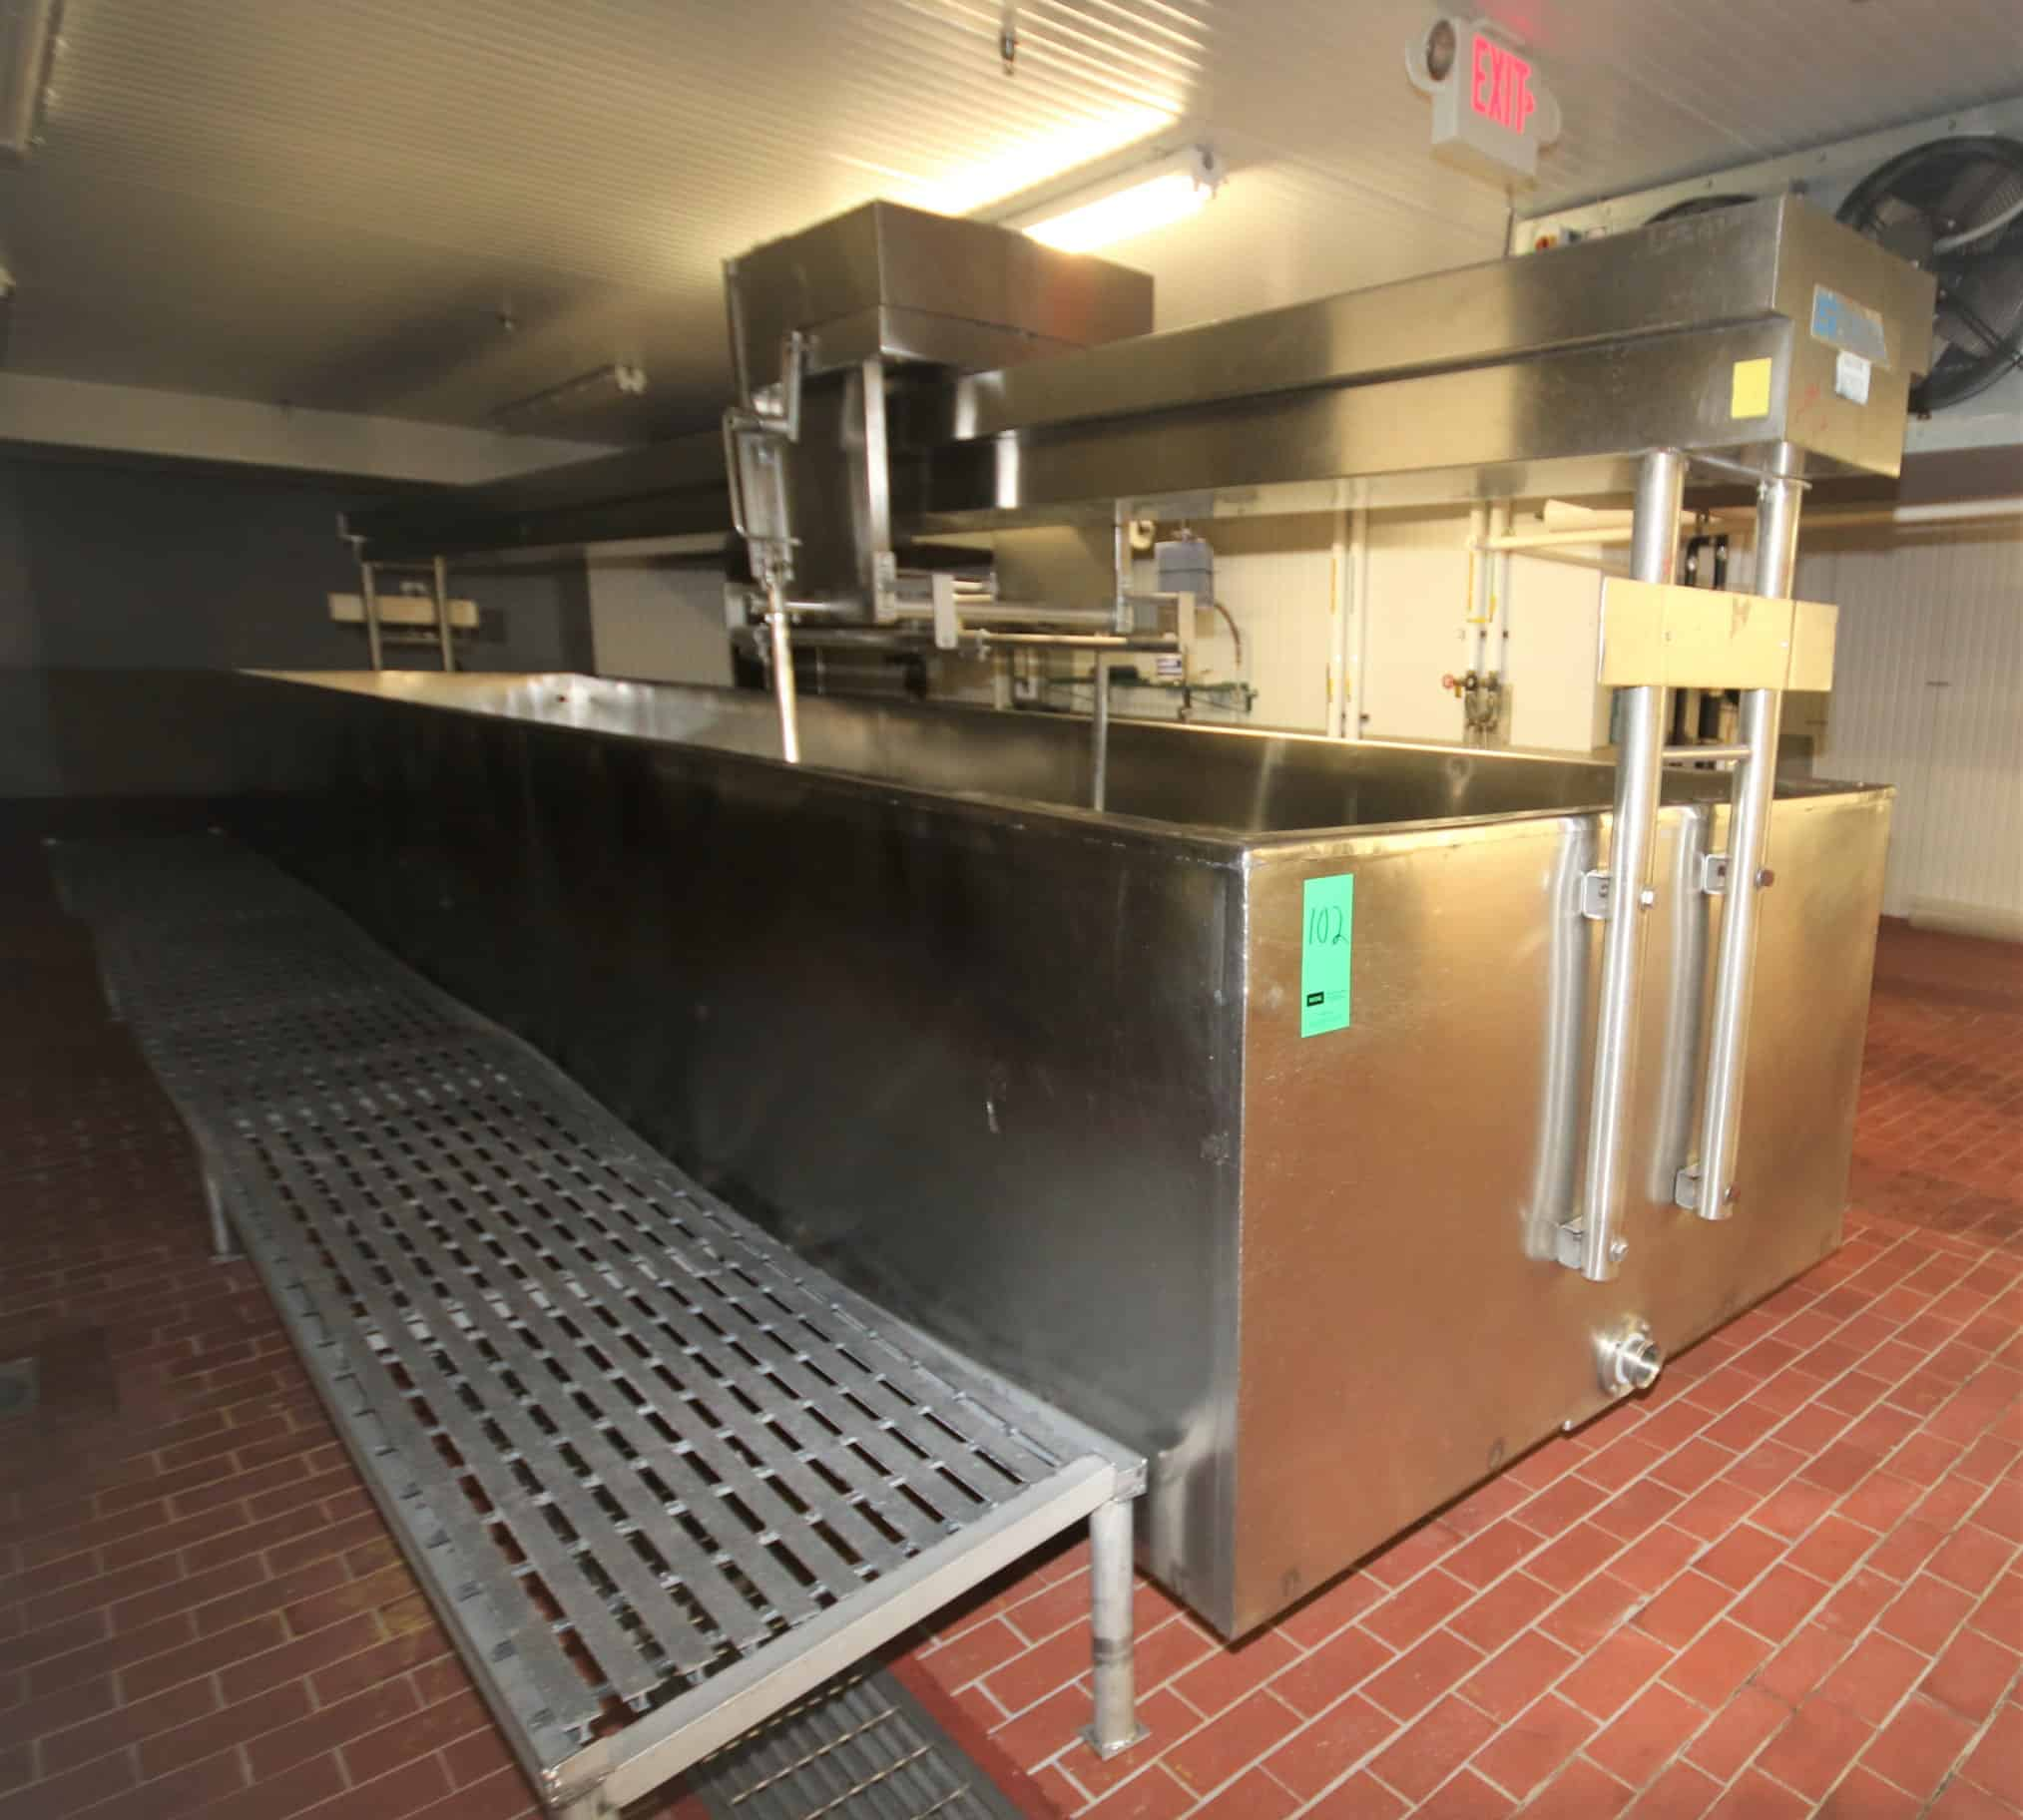 """Stoelting ~4,000 Gal. Open Top Jacketed S/SCheese Vat, Model VERTISTIR, S/N 338-045-59-3500-83 with Overhead Bridge Agitation, Agitator Blades, Valves and Controls, Vat Dimensions ~30 ft. L x 6 ft. W x 36"""" H"""